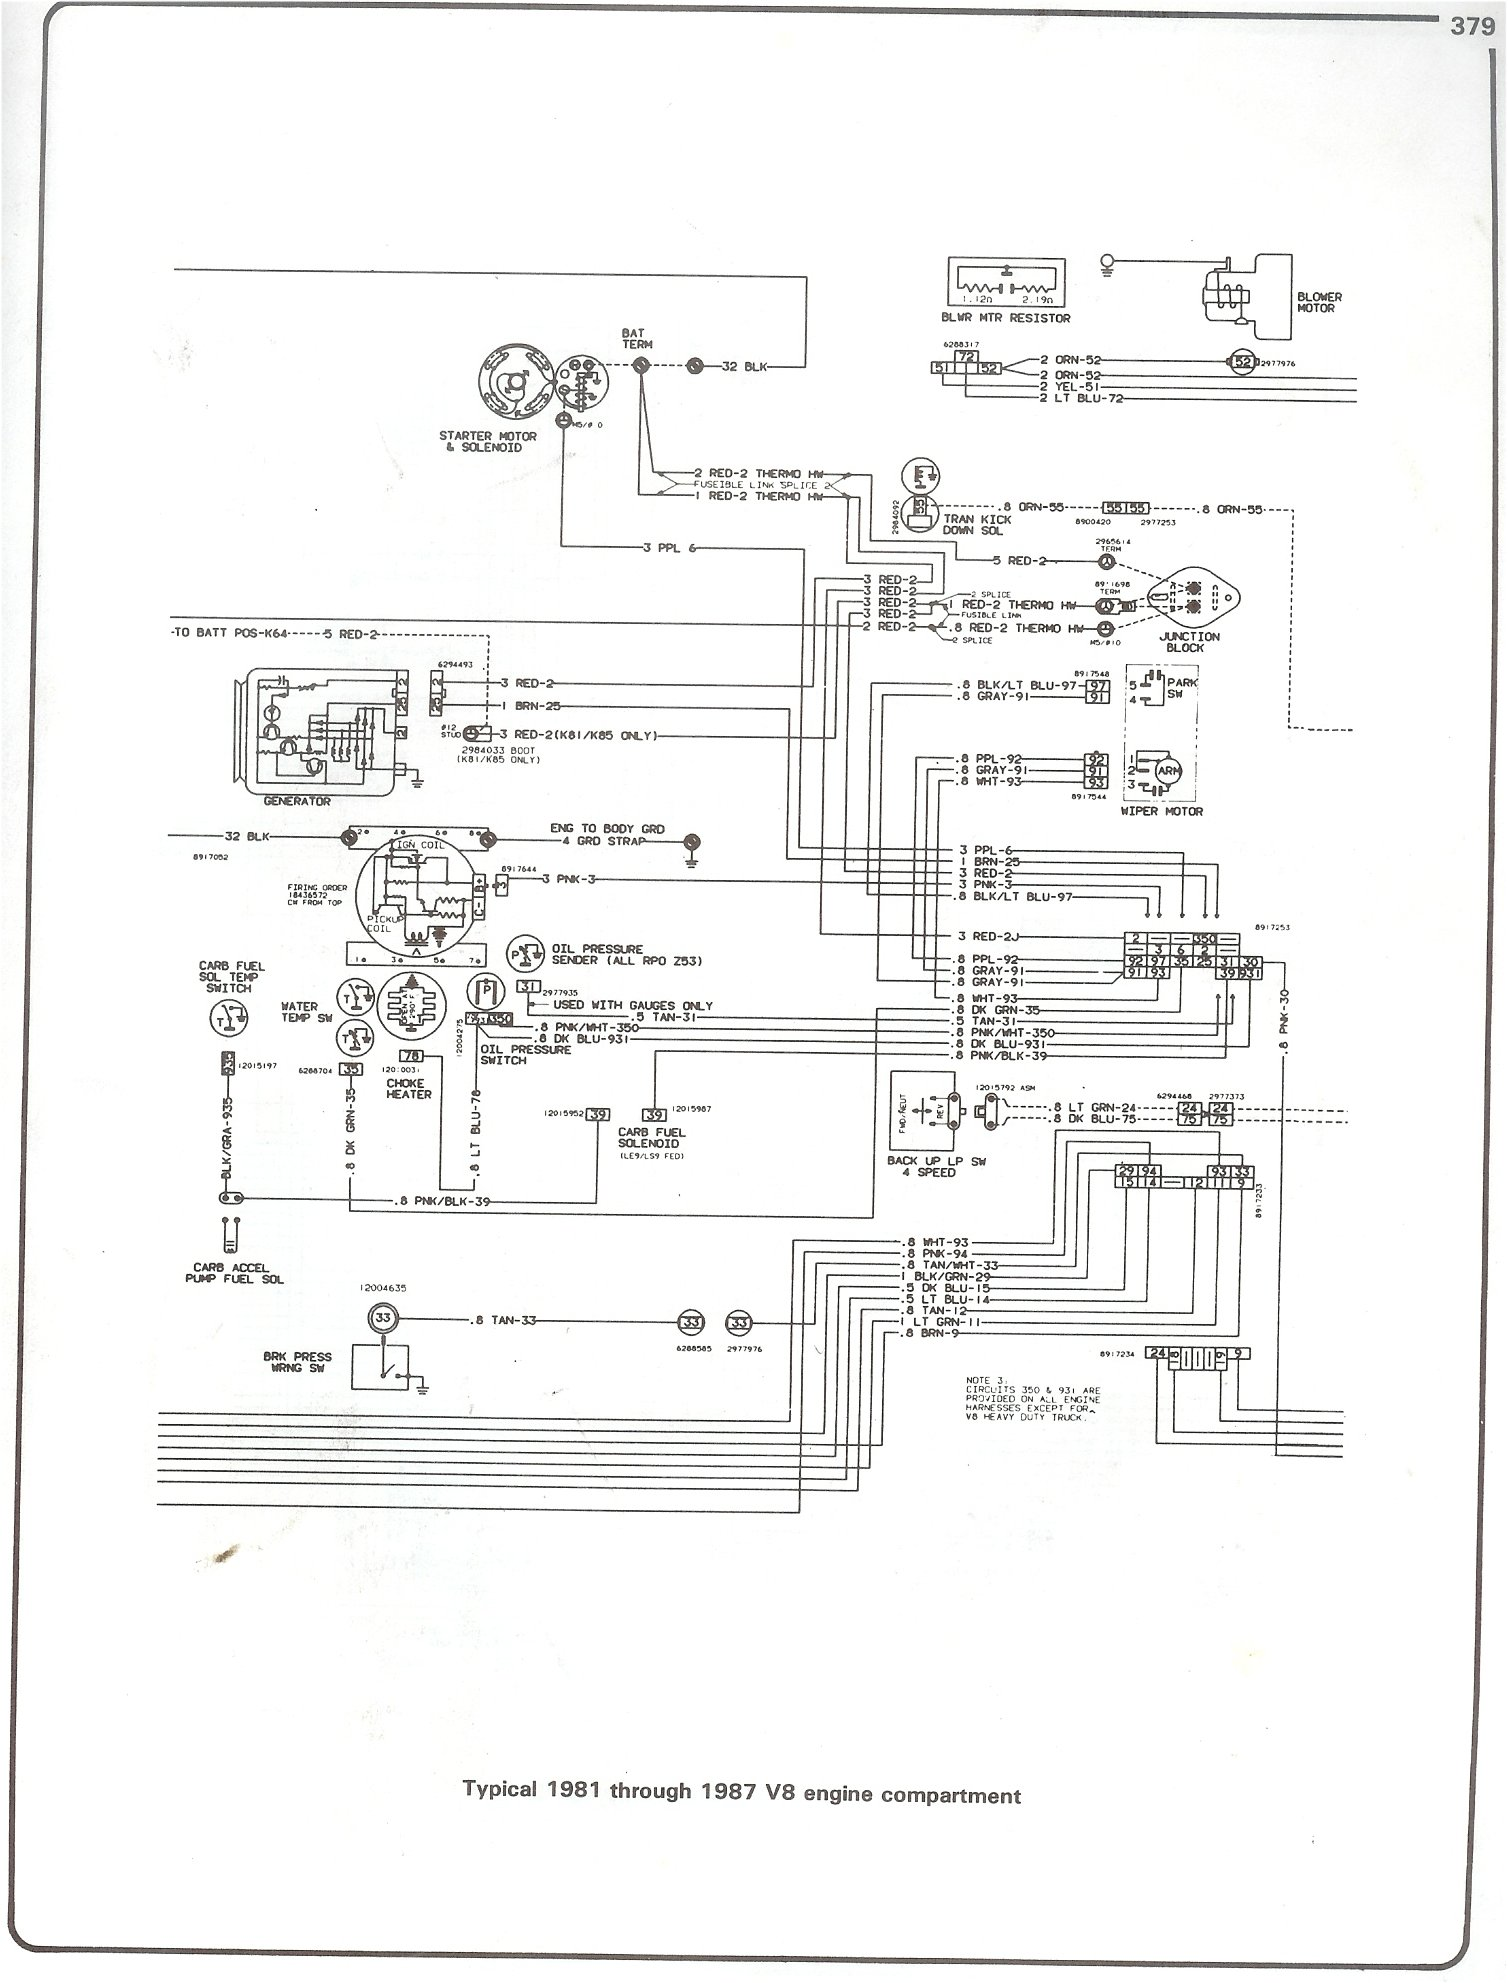 81 87_V8_engine complete 73 87 wiring diagrams 1987 chevy truck wiring diagram at crackthecode.co